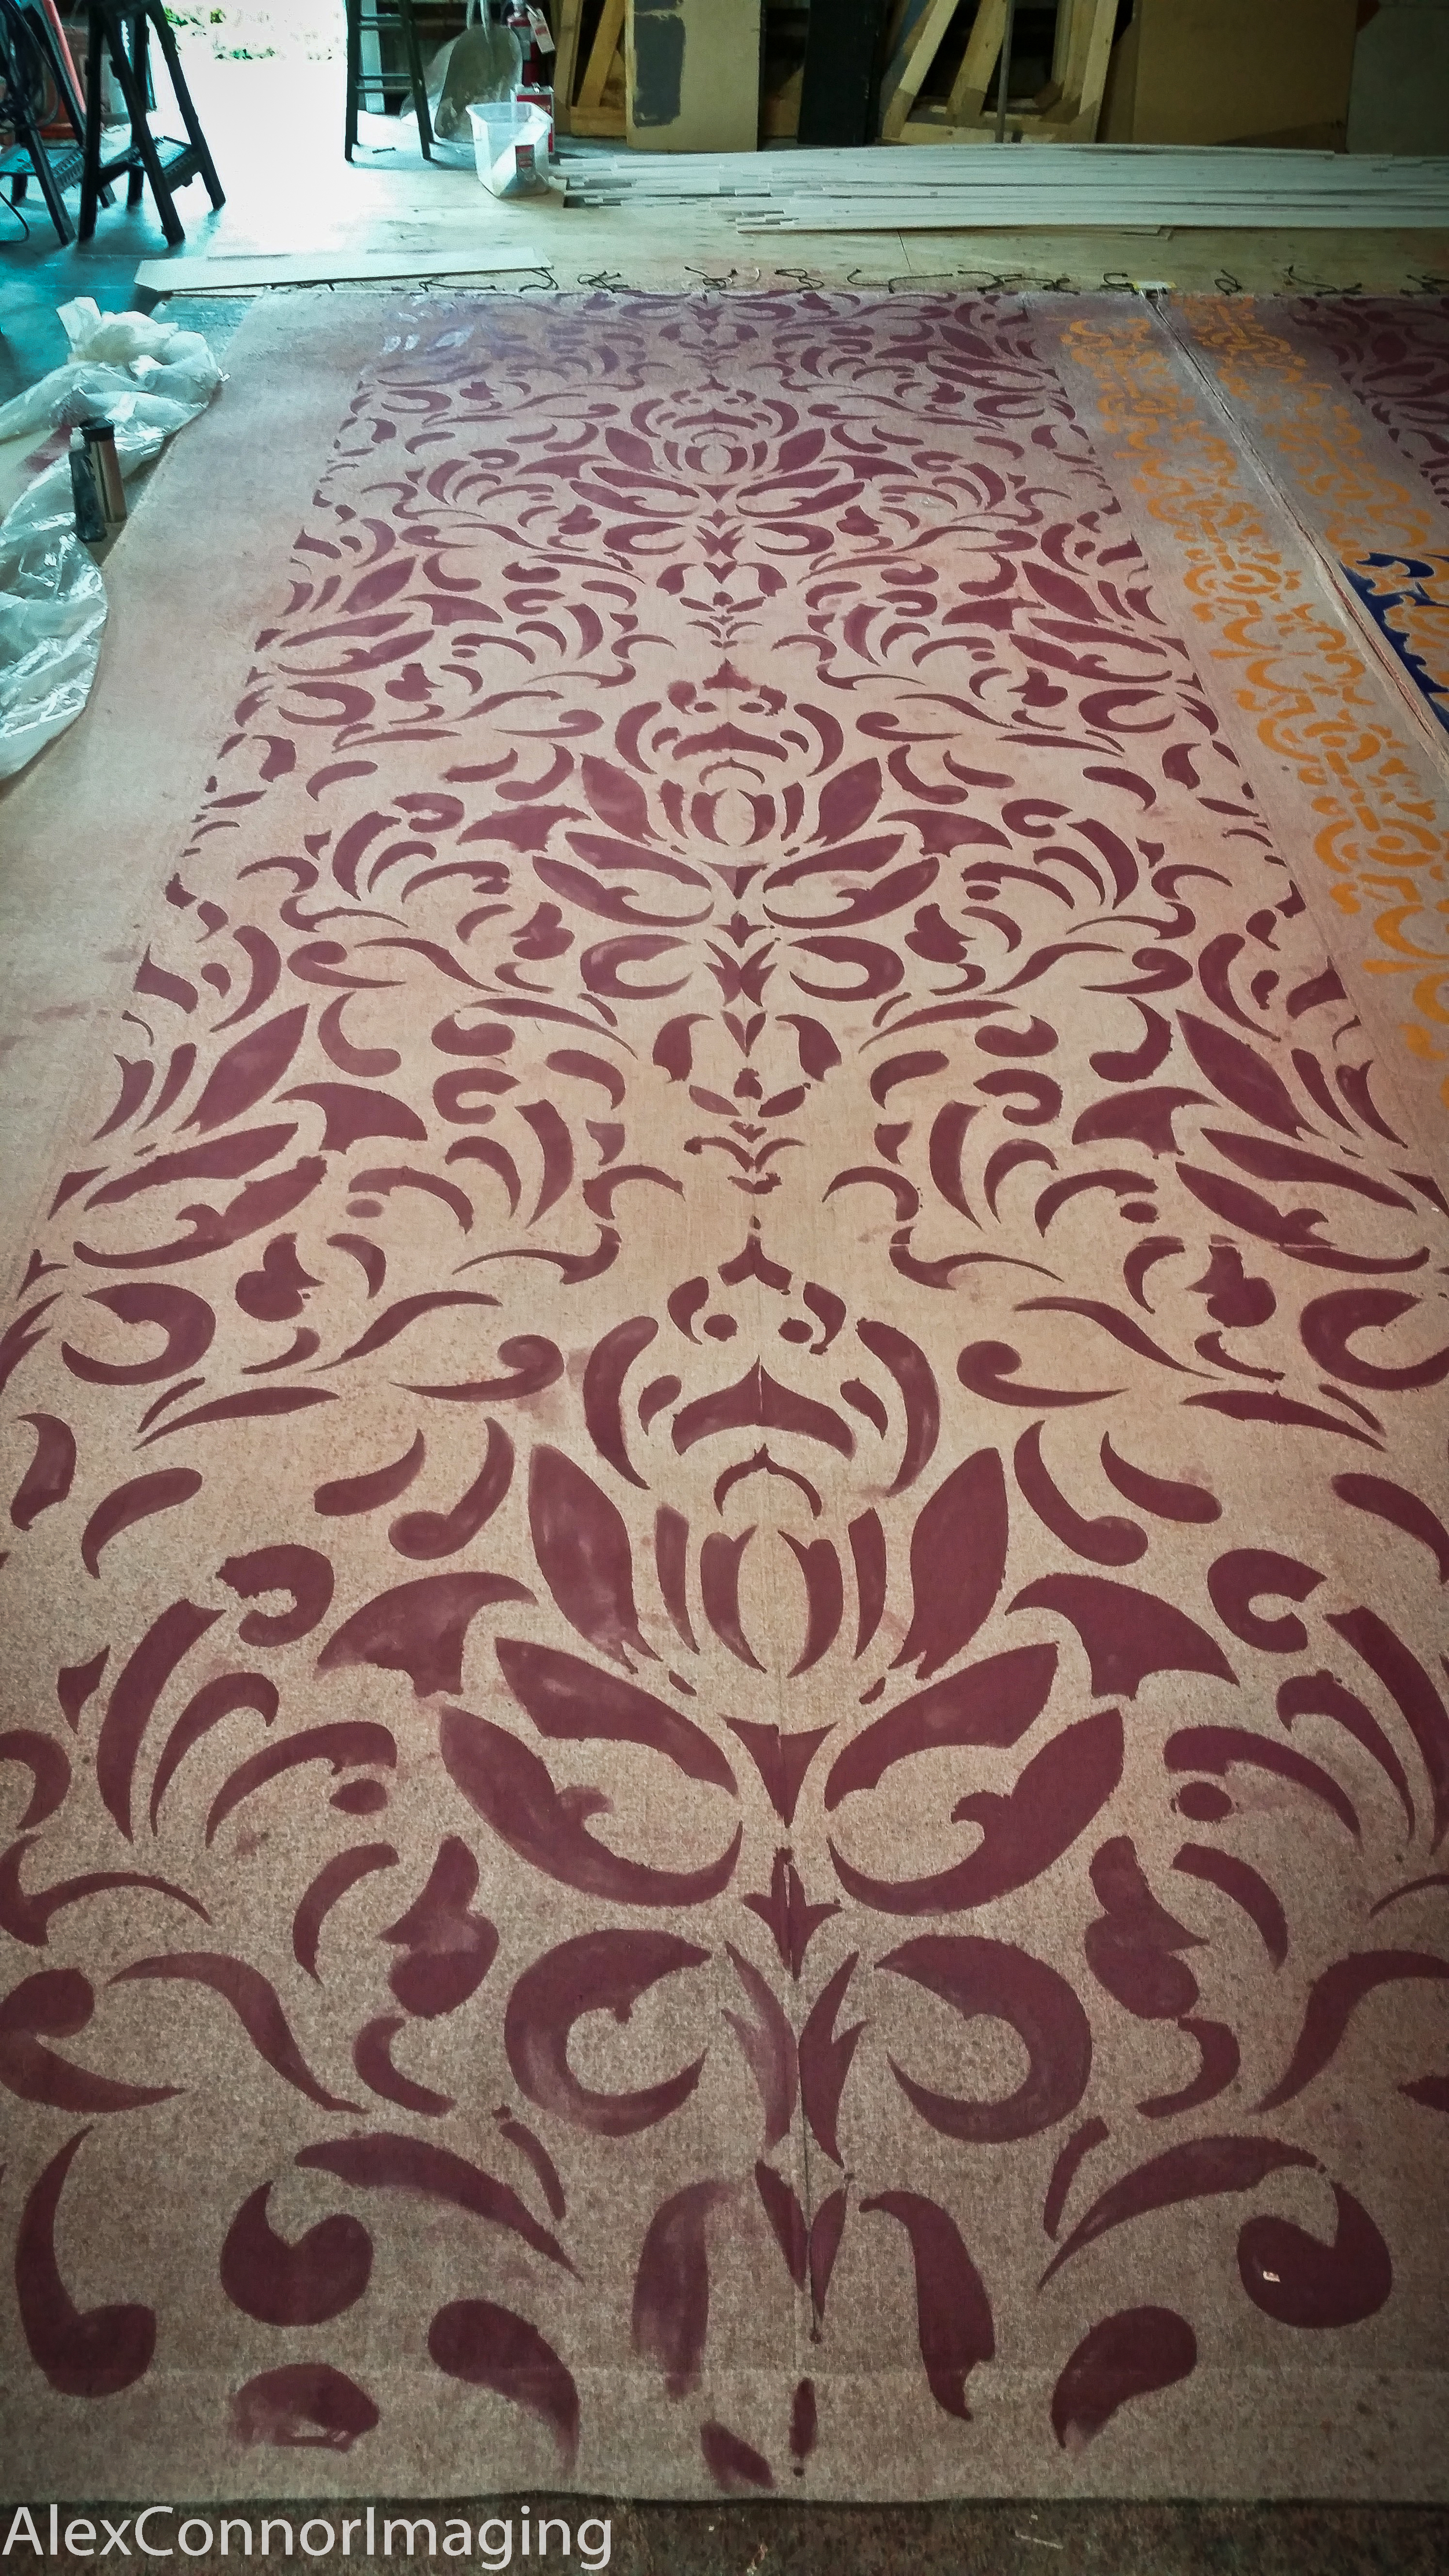 Completed Drape from Stencils